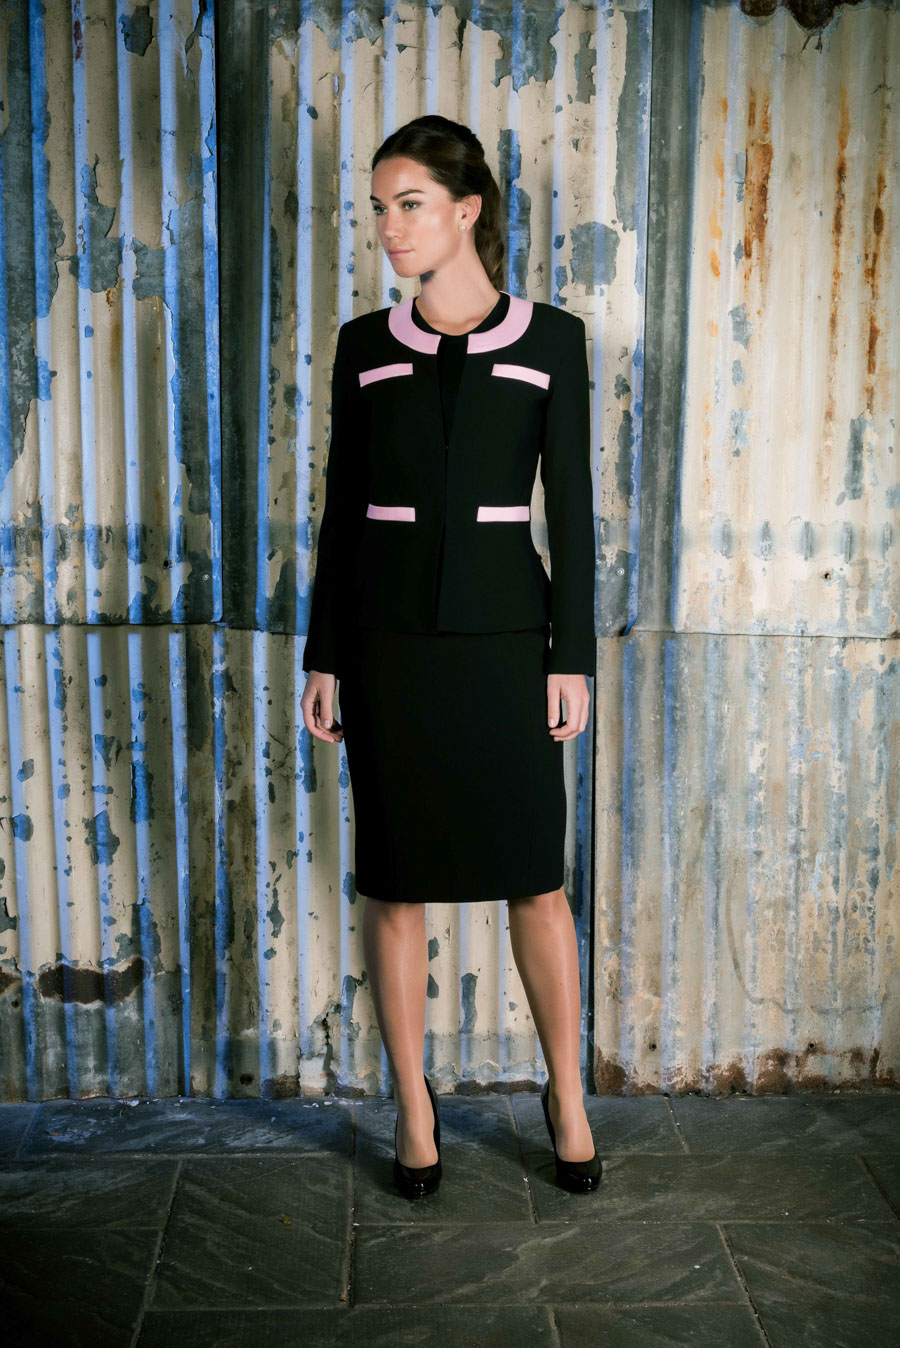 Row 30 _ Female Image No.1 _ Black & Pink Suit